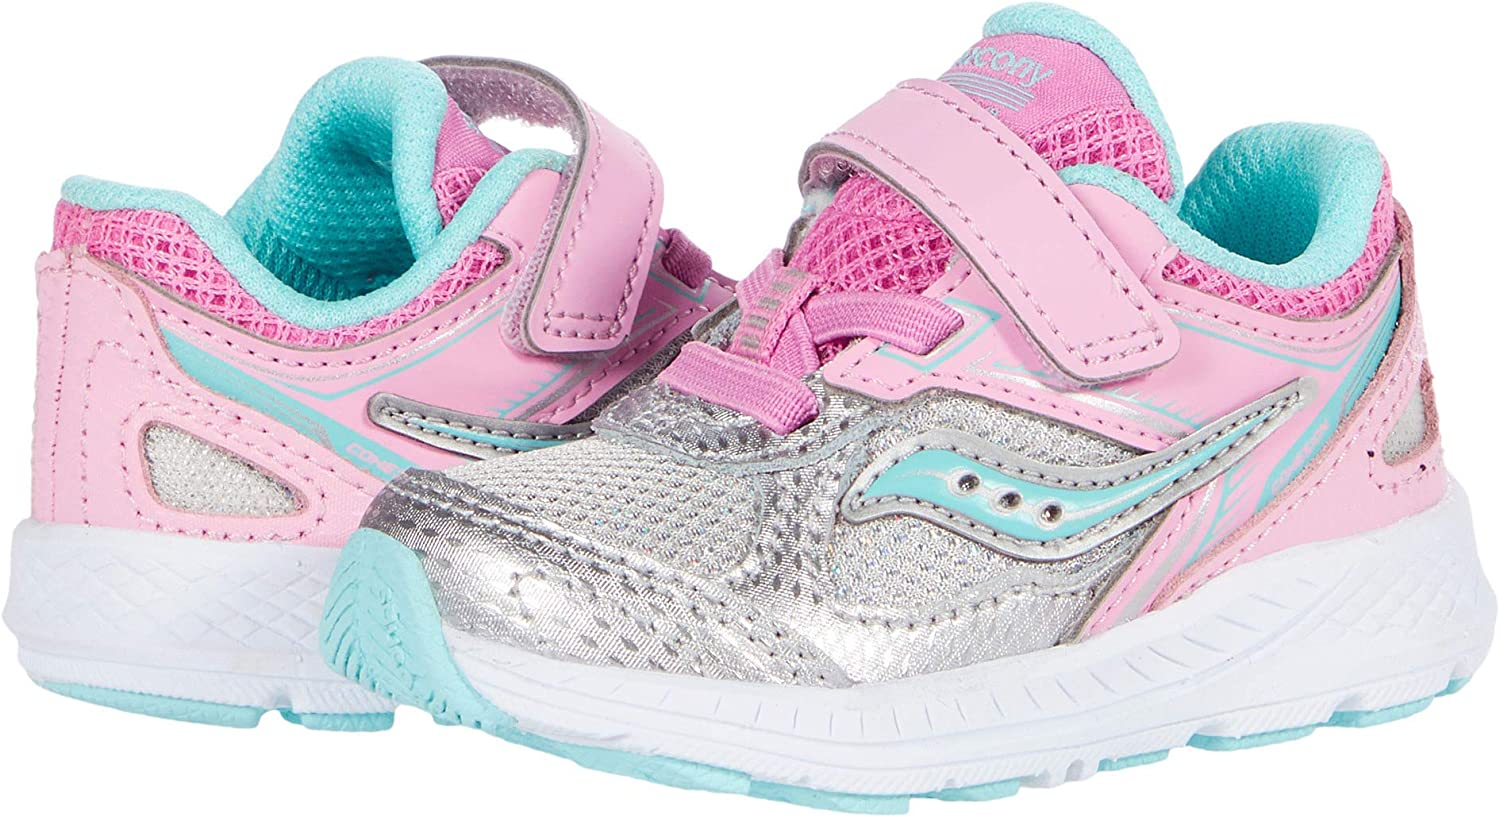 Saucony unisex Special price for a limited time Trust child Cohesion 14 Closure Jr Alternative Sneaker